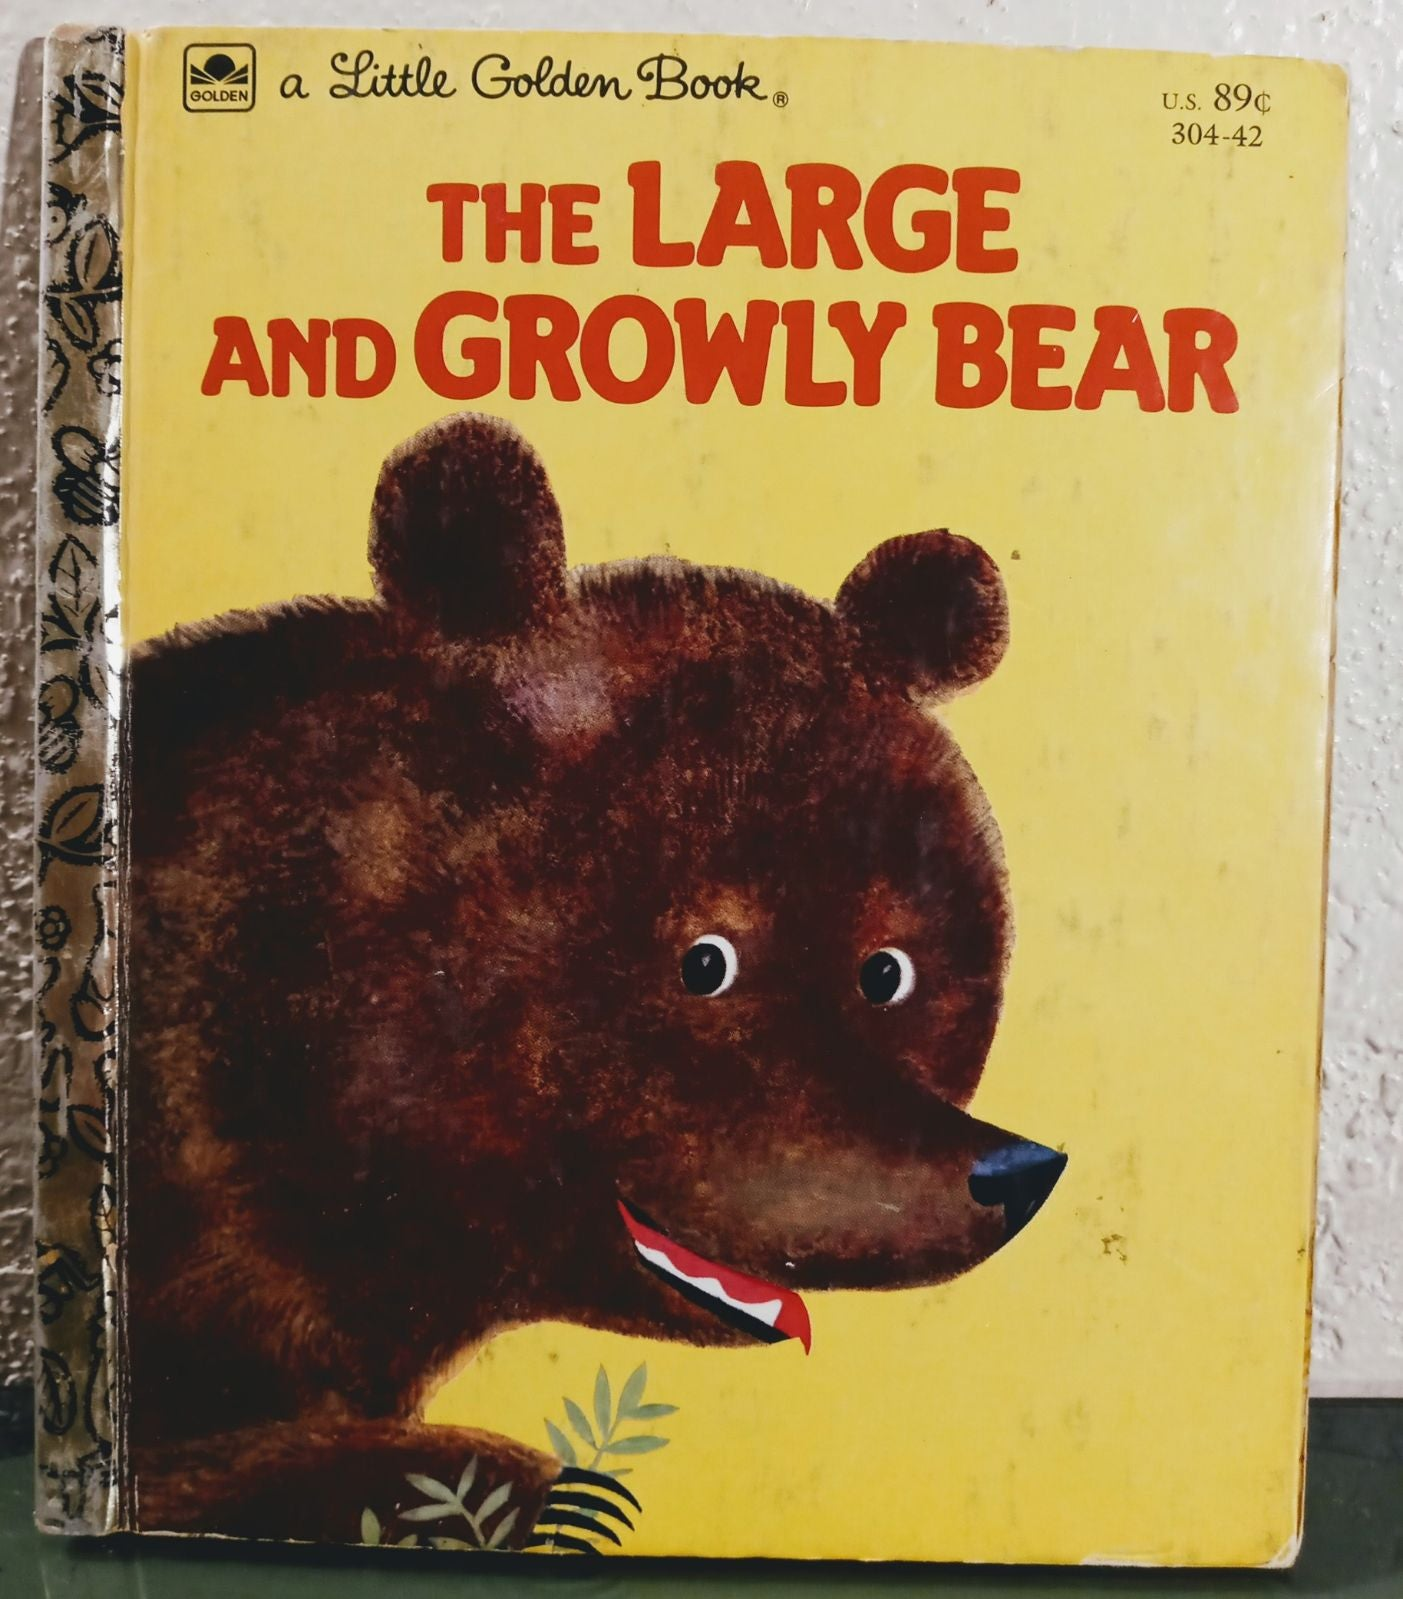 The Large and Growly Bear Golden book